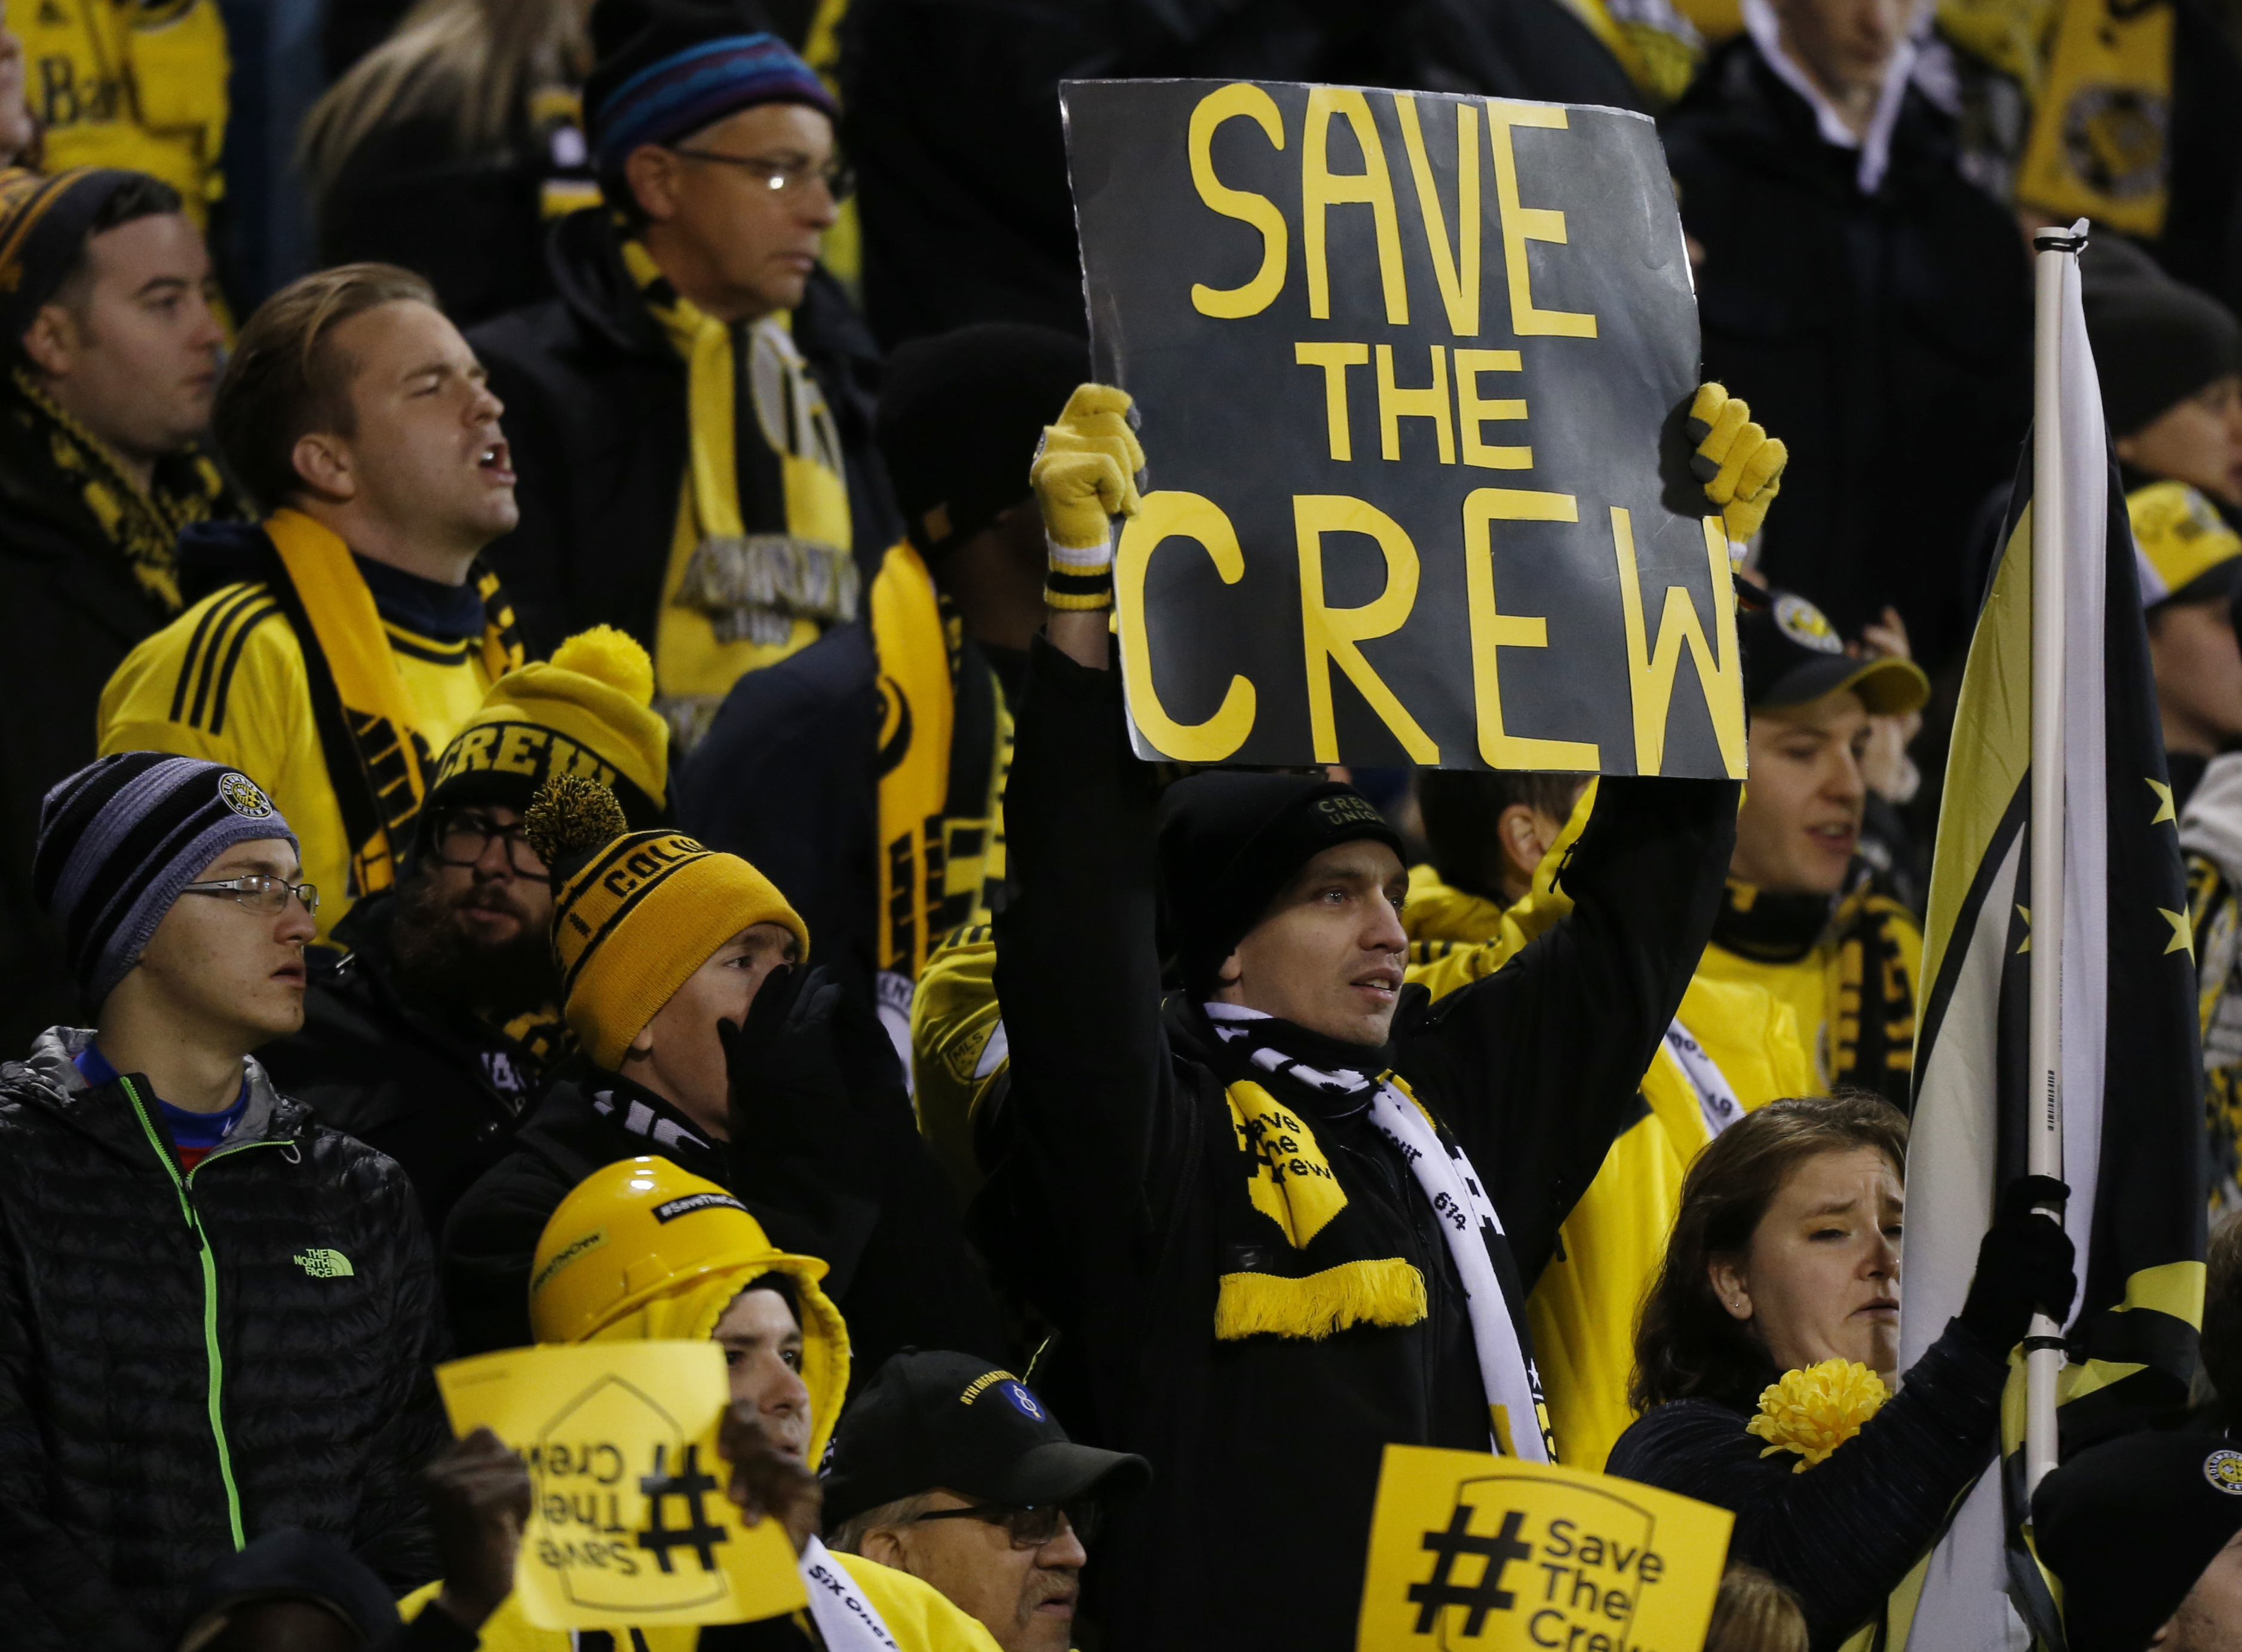 Columbus Crew fans show their support for their team as they play against Toronto FC during the first half of an MLS Eastern Conference championship soccer match Tuesday, Nov. 21, 2017, in Columbus, Ohio. The Crew´s owner has recently threatened to move the team after the 2018 season. (AP Photo/Jay LaPrete)